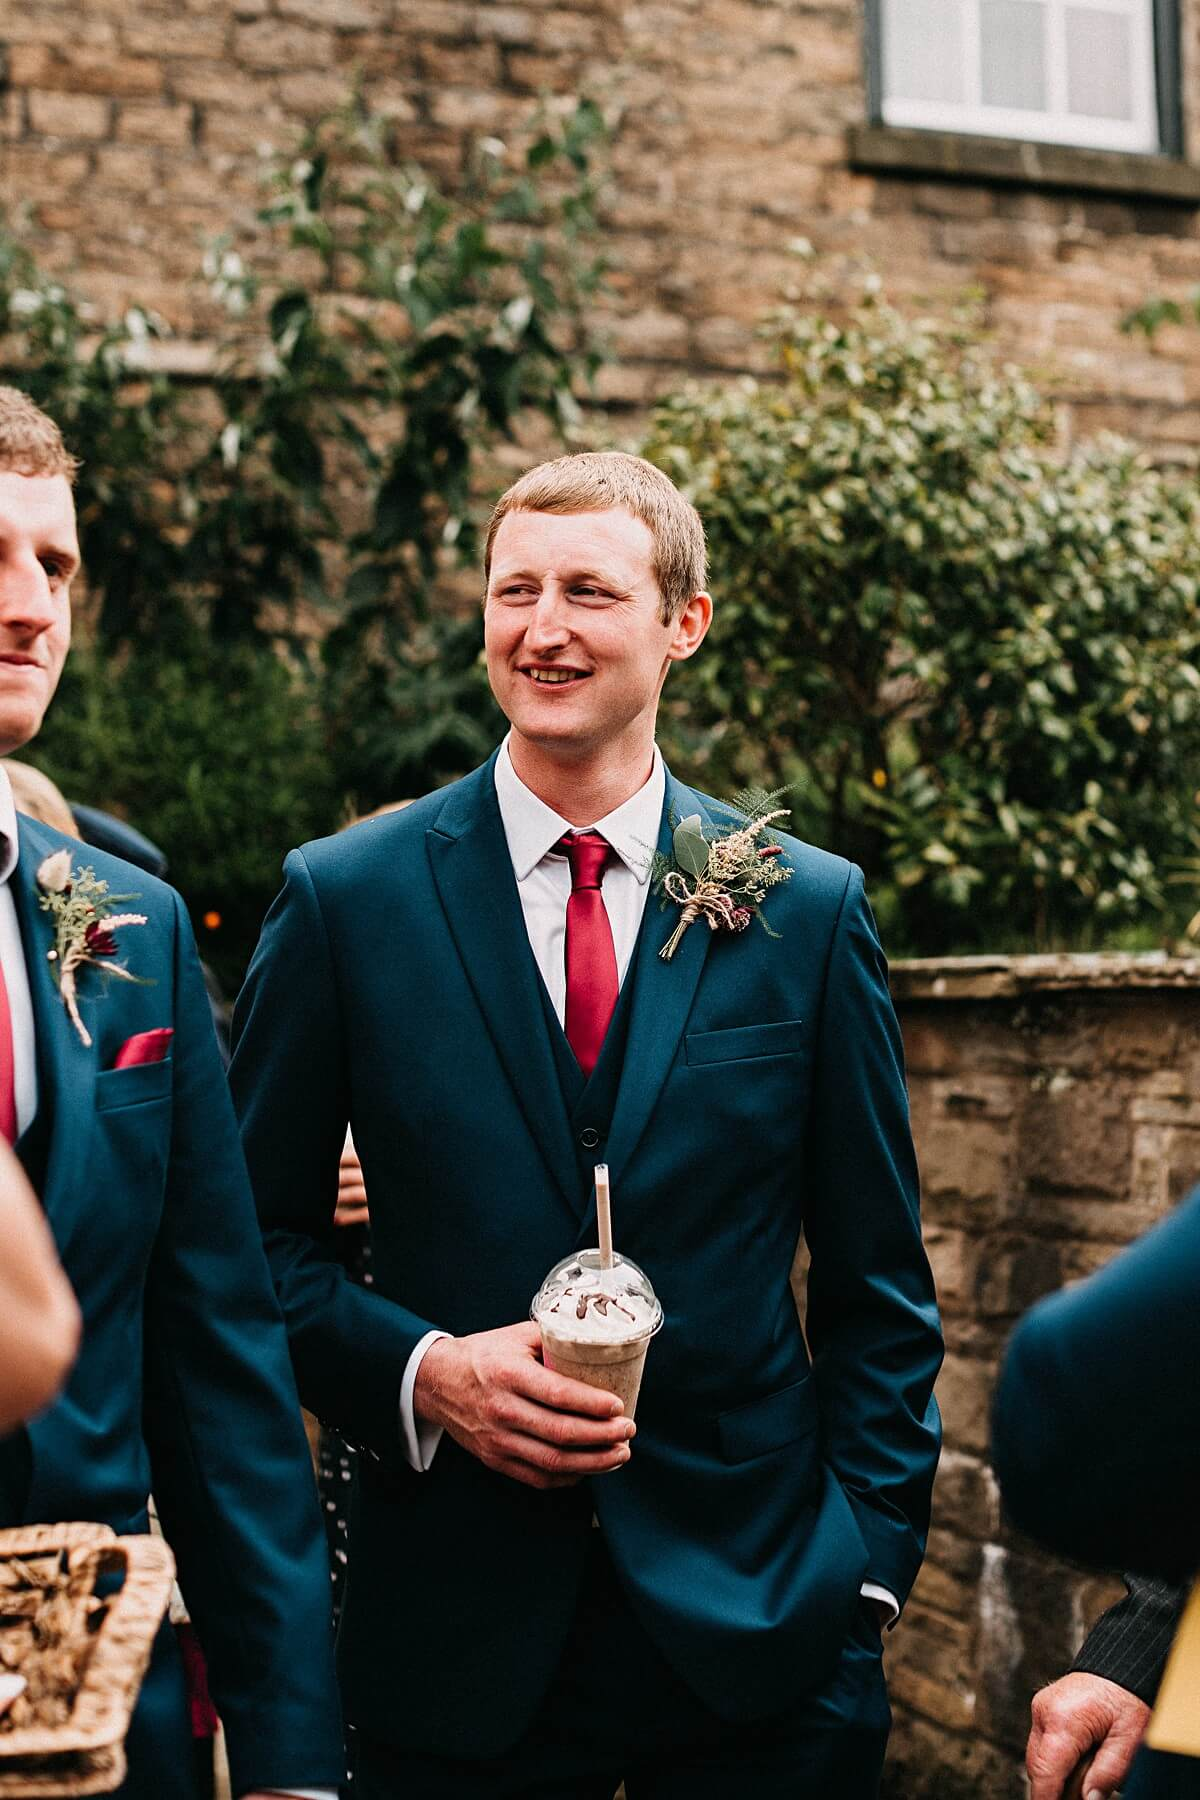 Natural portrait of the groom with a milkshake